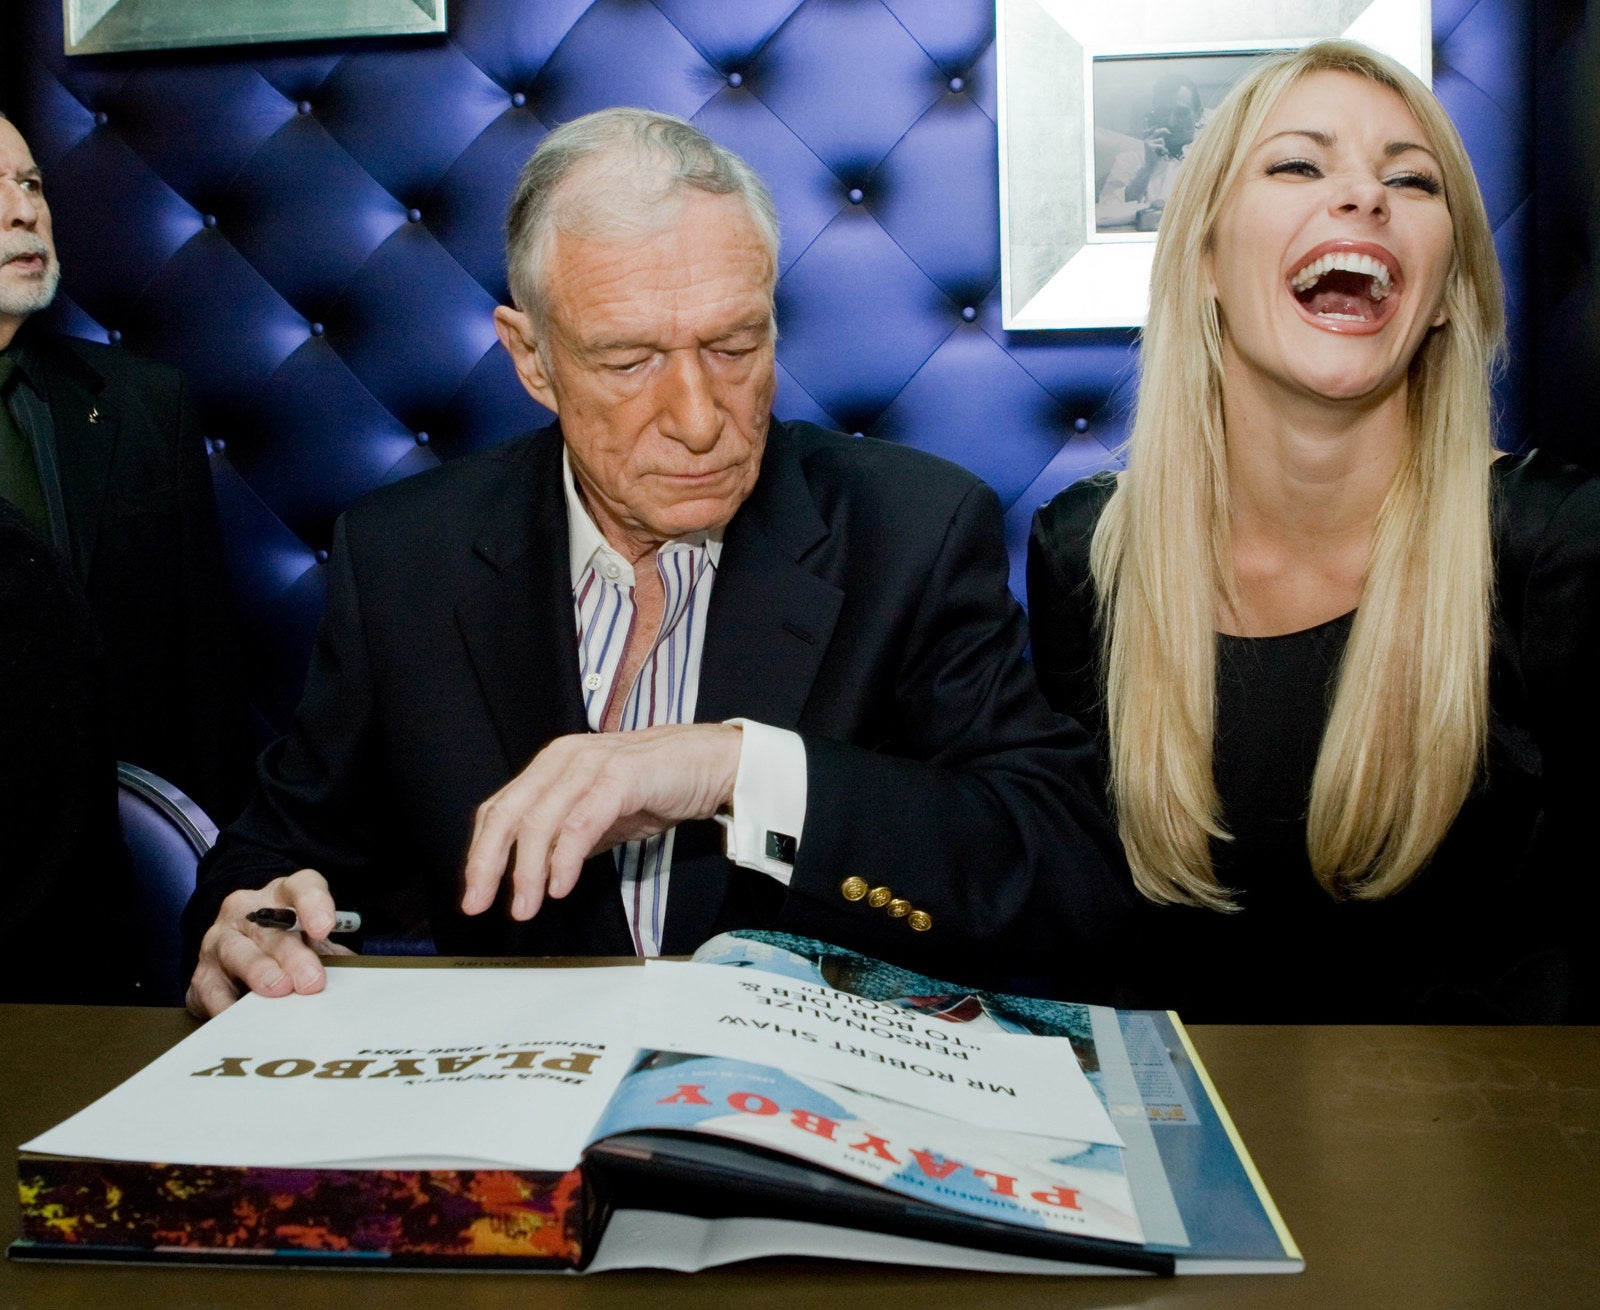 Hefner and model Crystal Harris, later Crystal Hefner, attend a signing in Los Angeles on Dec. 10, 2009.